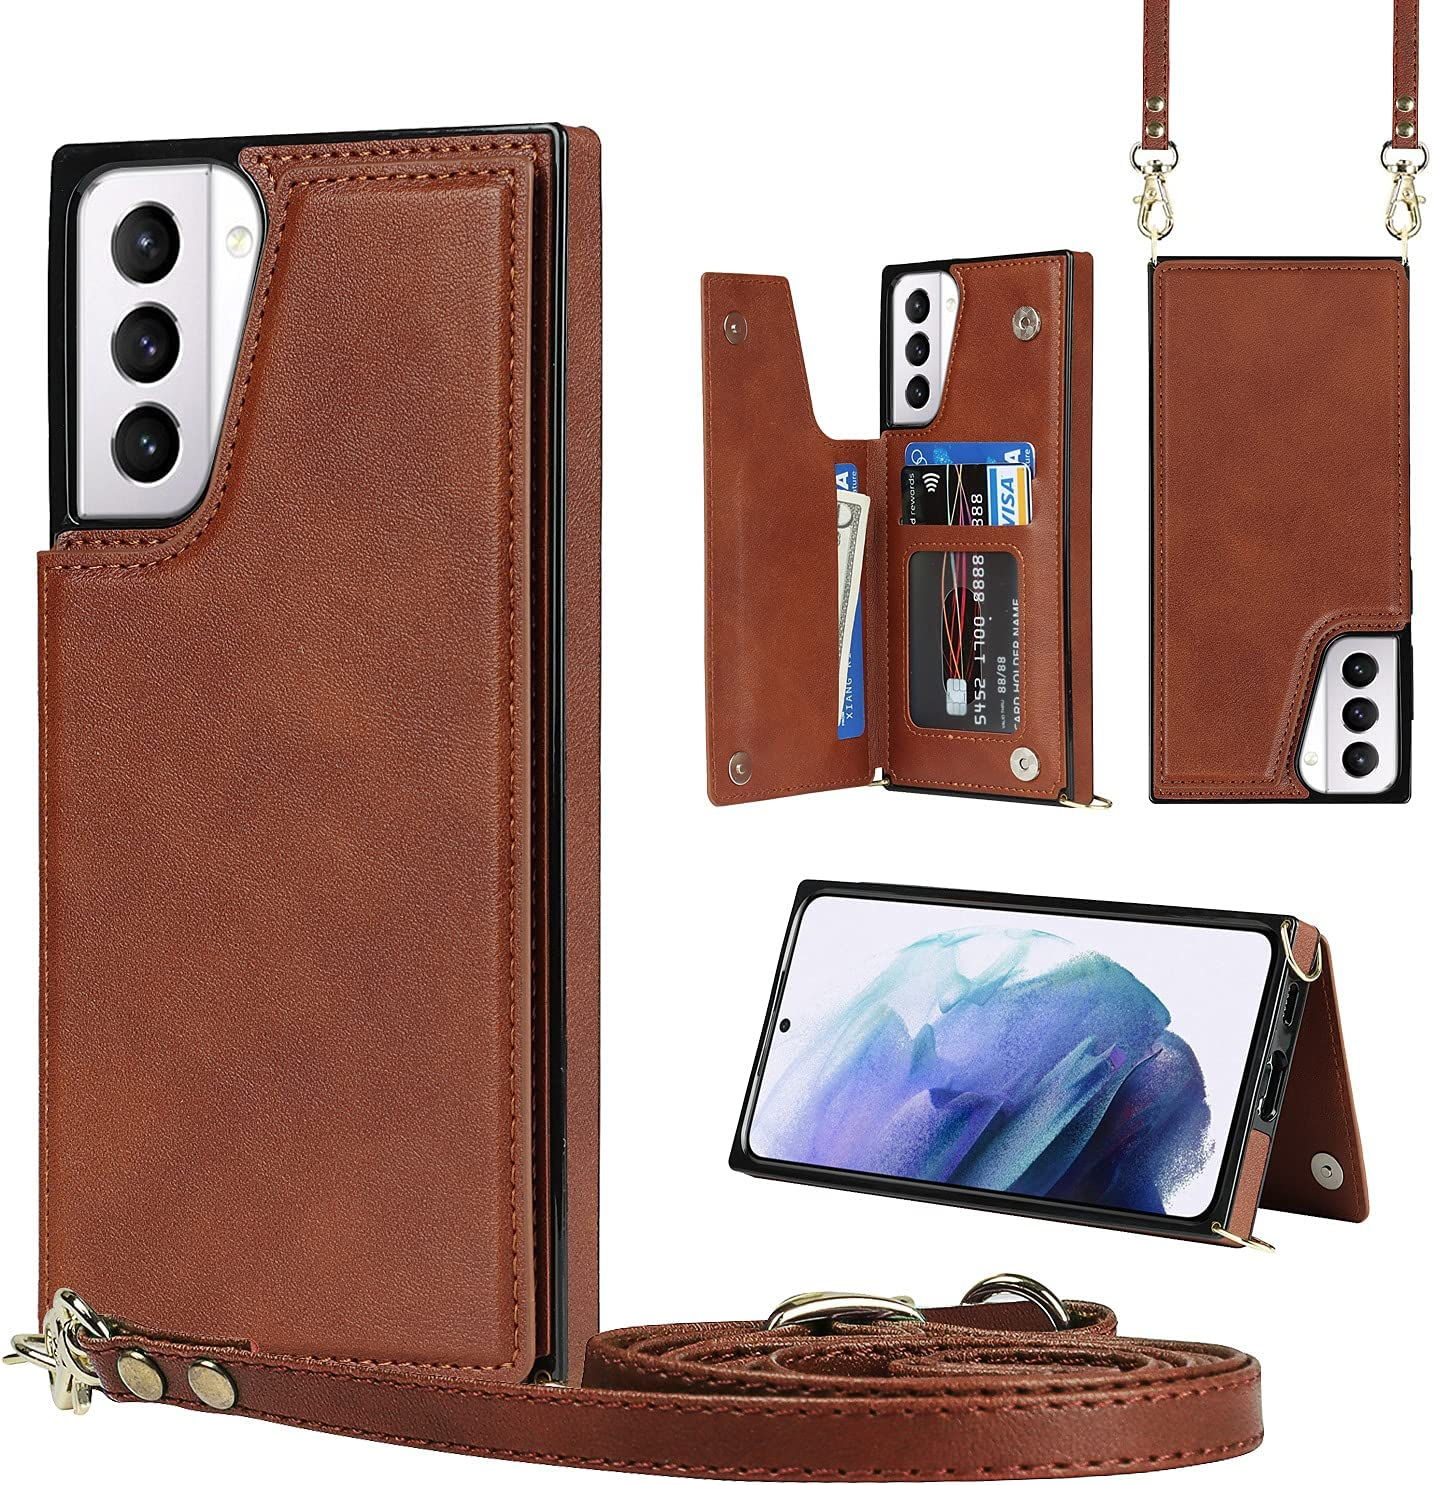 Crossbody Case for Samsung Galaxy S21 Ultra TPU Leather Shockproof Cover, Wonderful Wallet Function, Kick Stand RFID Blocking Material Lanyard Strap with Women Girl (Brown)